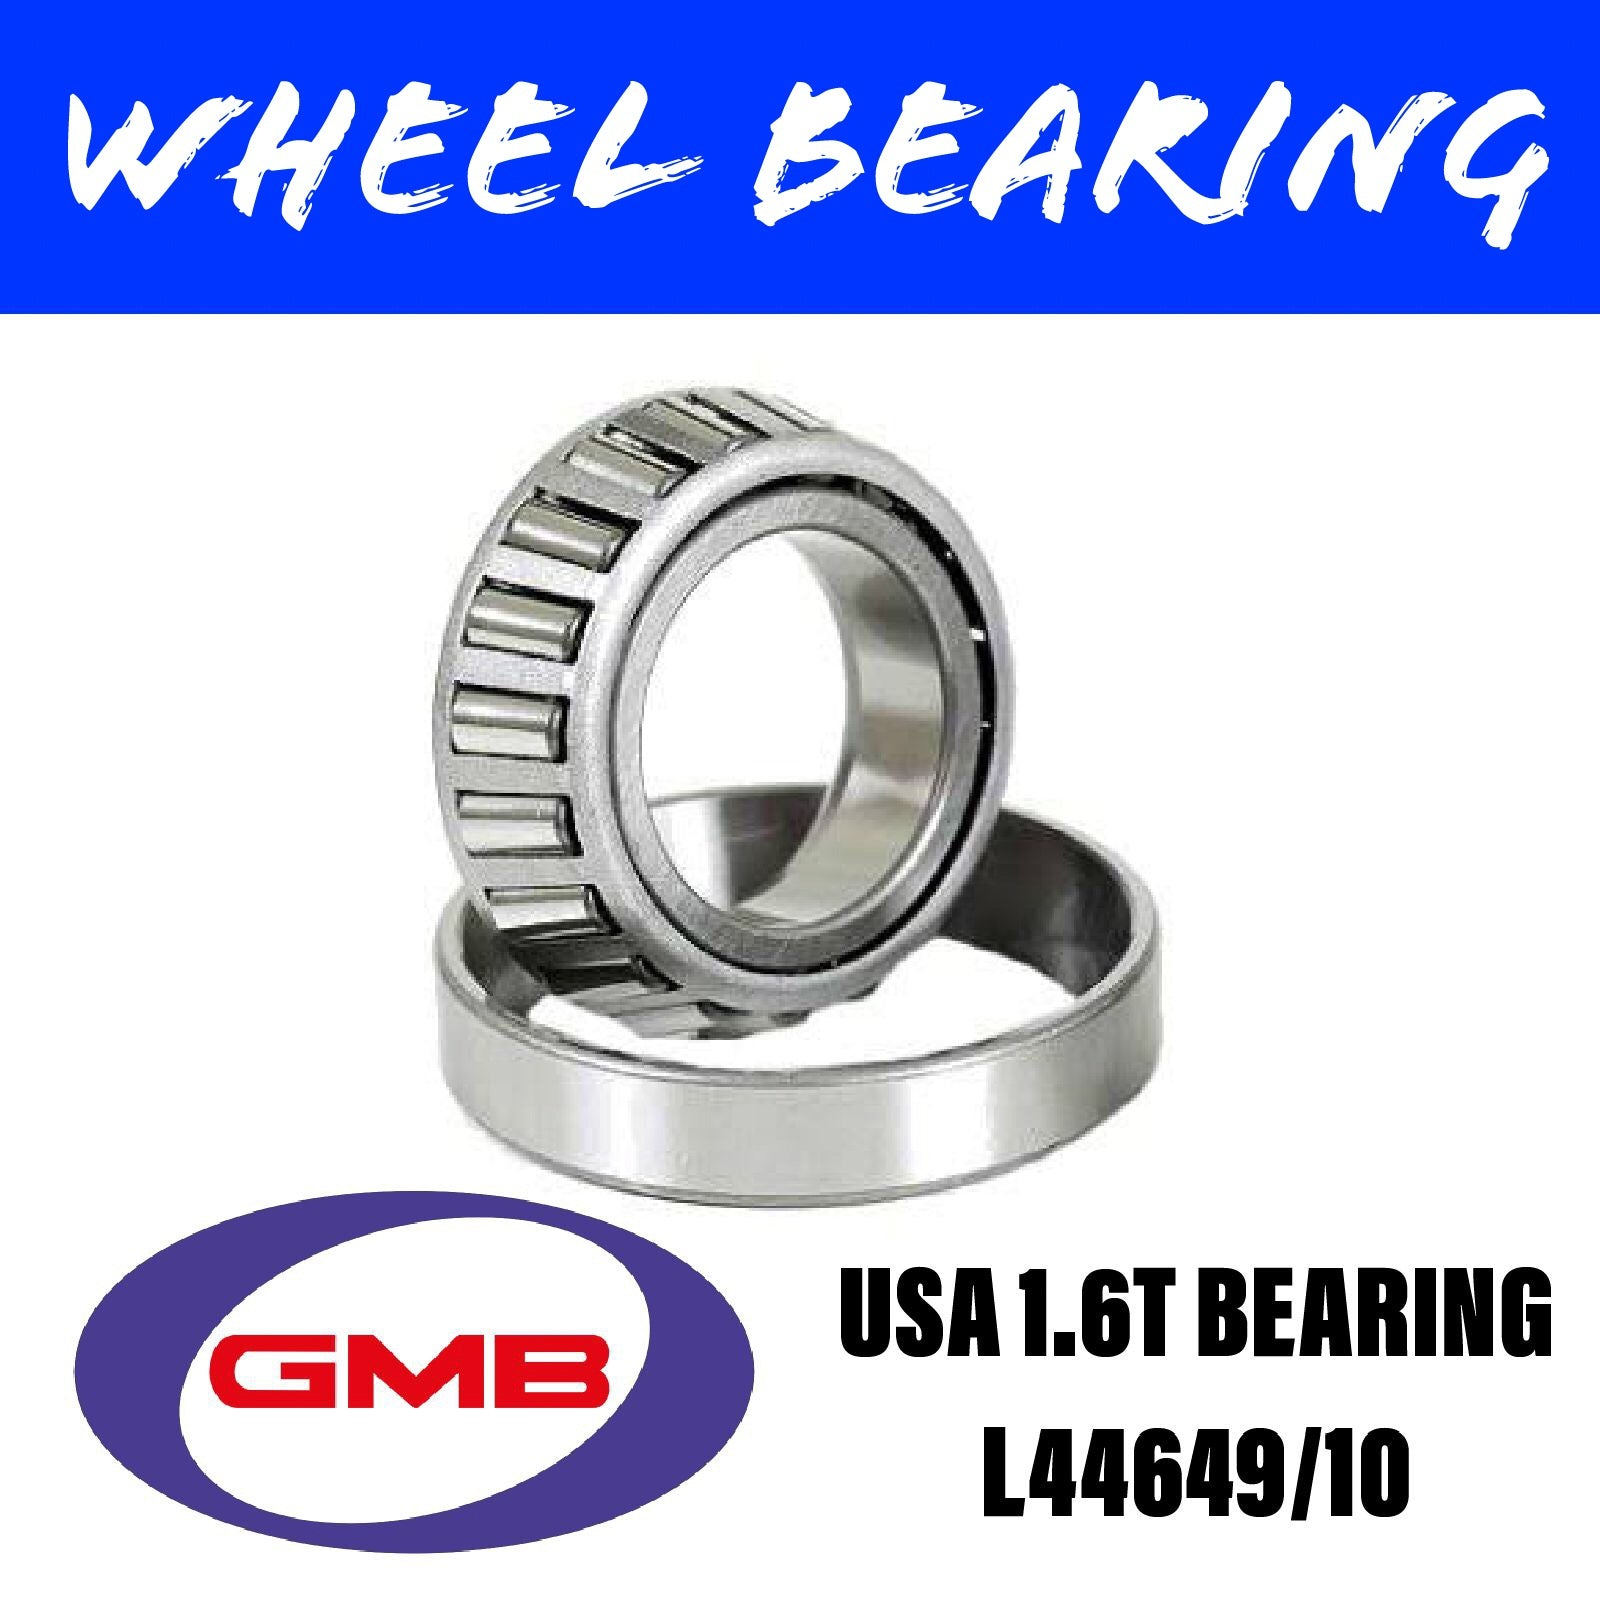 GMB L44649/10 Wheel Bearing